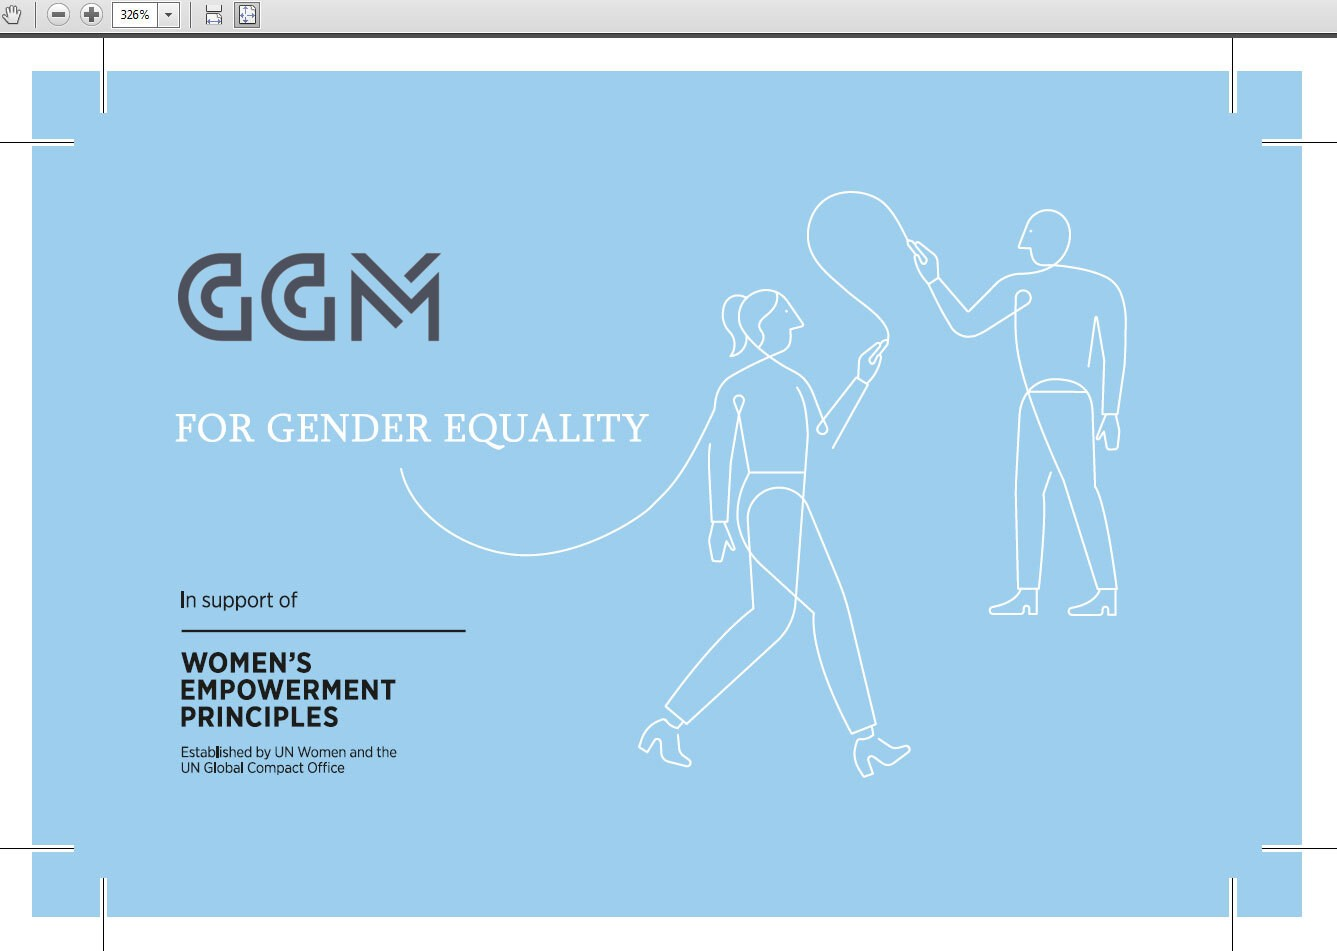 GGM has signed the Women's Empowerment Principles